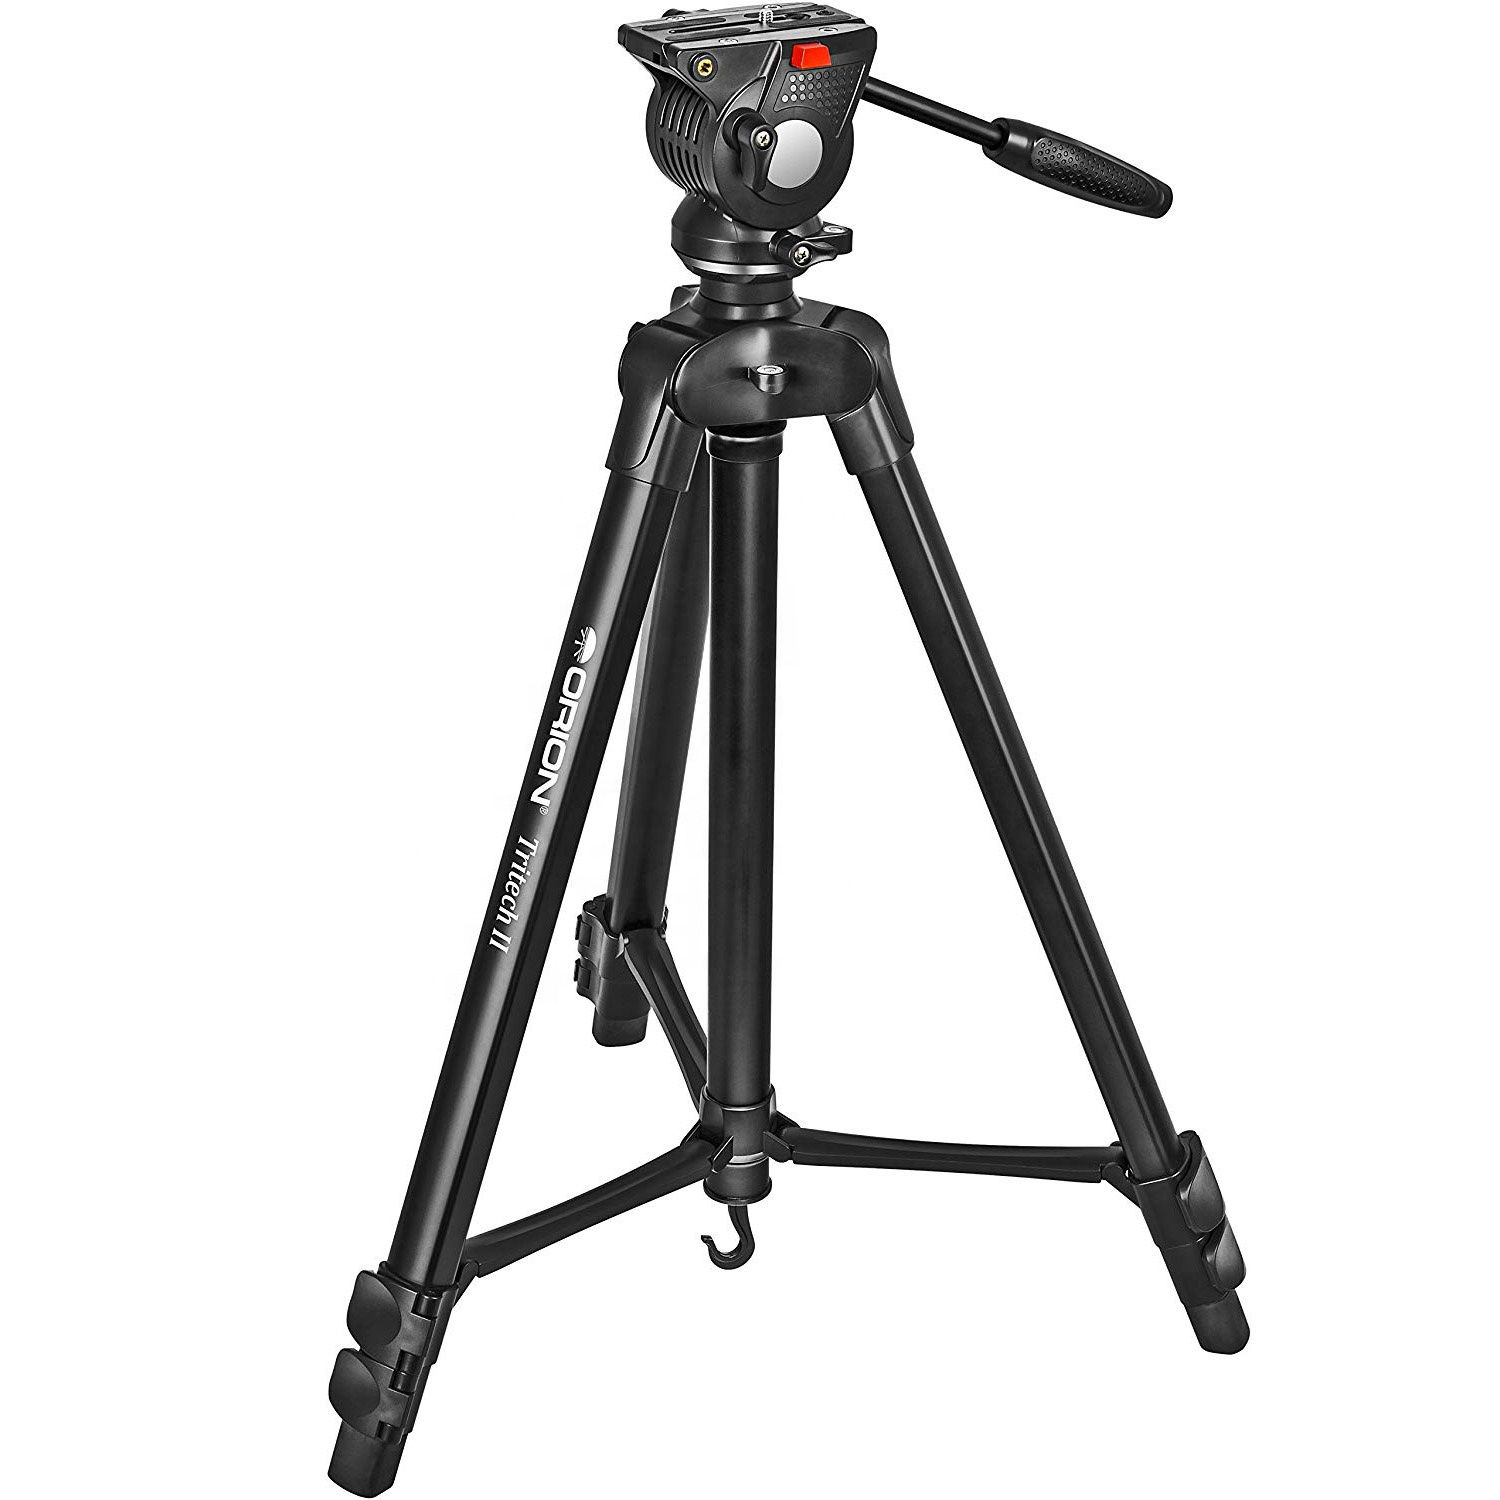 Video Camera Tripod  With Fluid Pan Head for spotting scopes, cameras, video cameras, binoculars and more